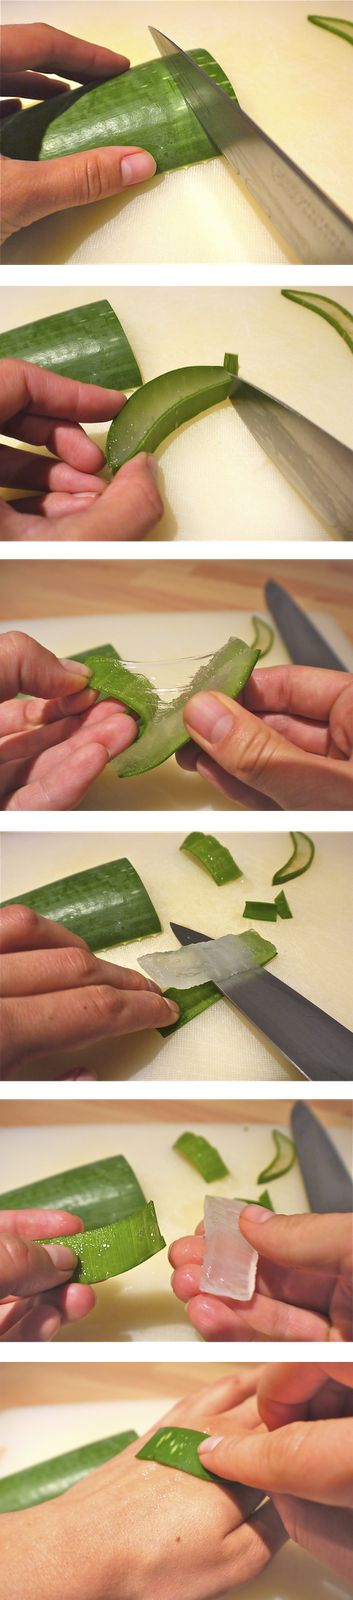 Seven ways to use Aloe Vera